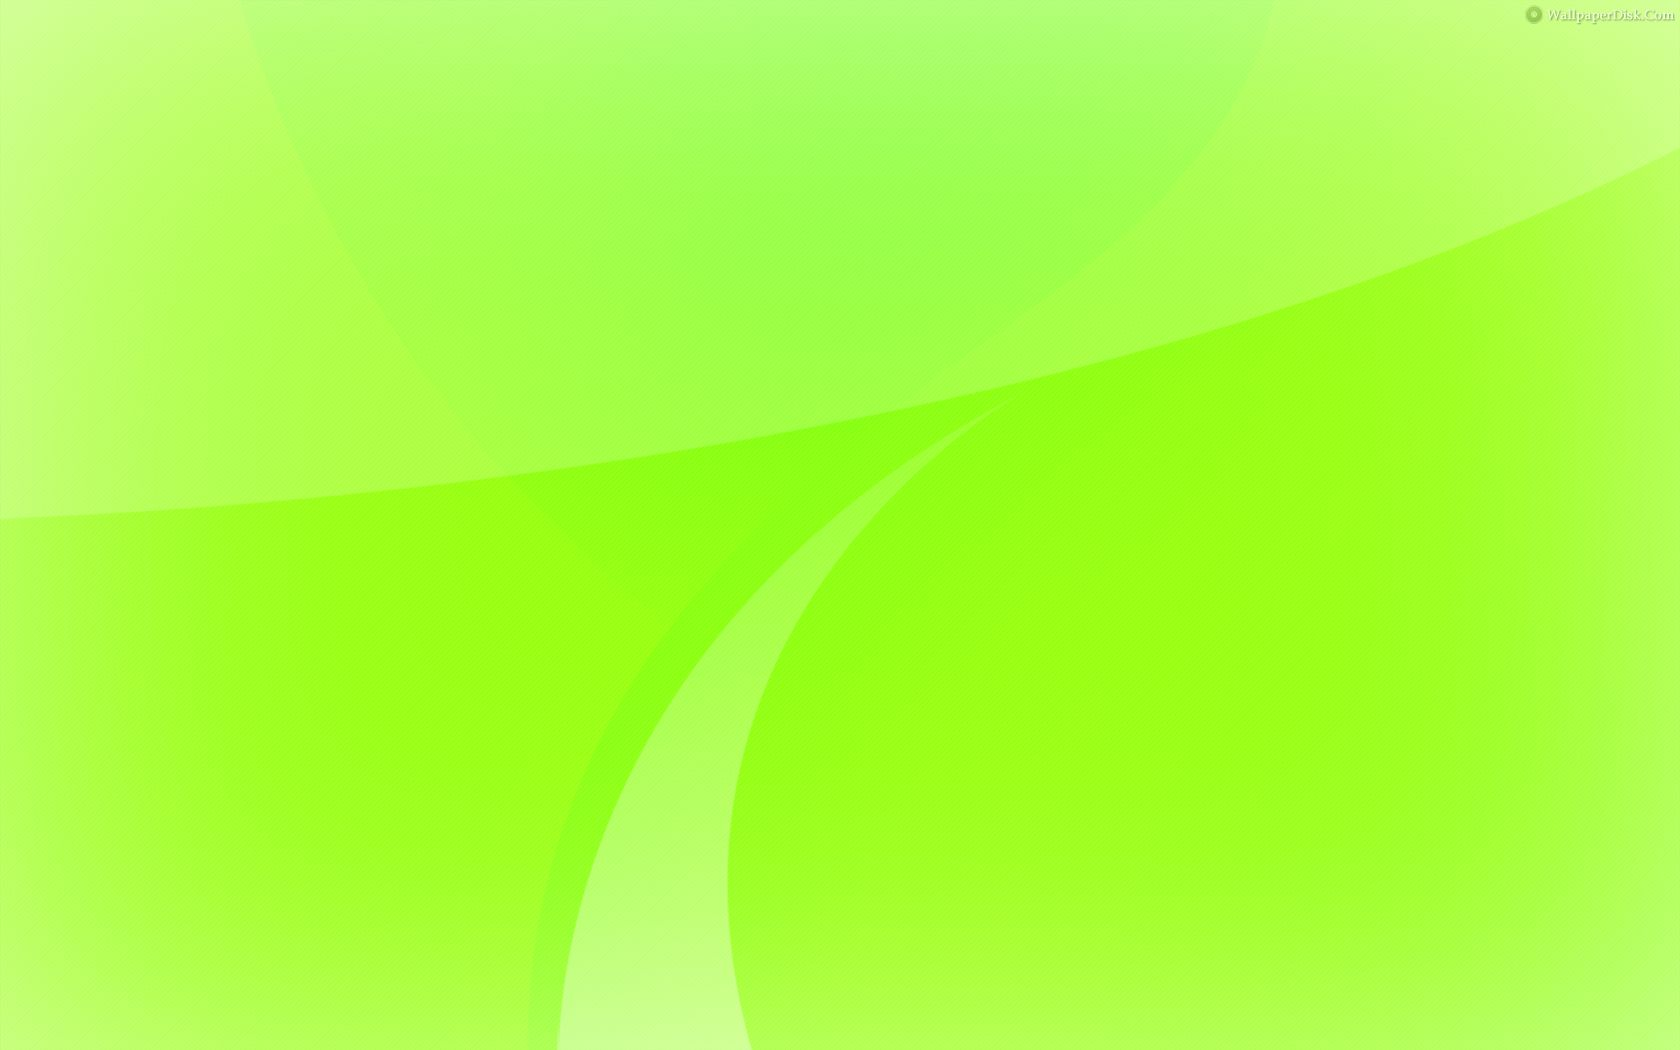 lime green backgrounds - photo #31